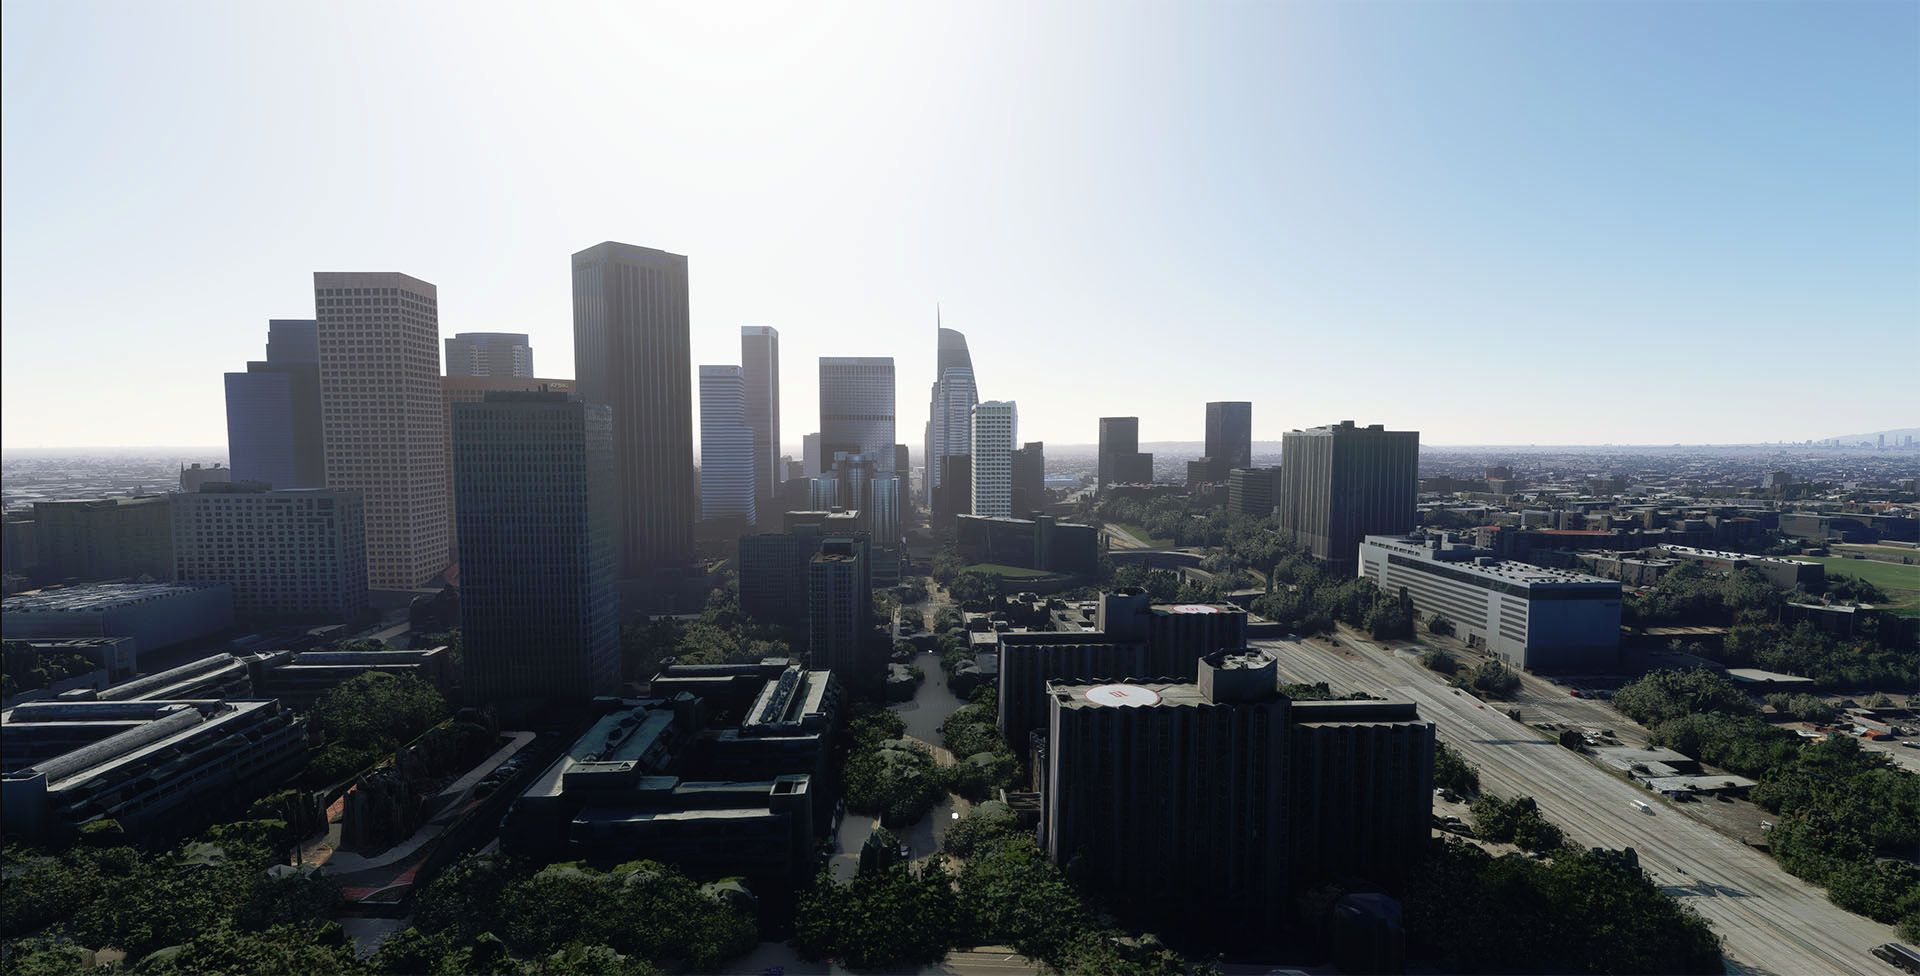 MSFS Los Angeles Photogrammetry